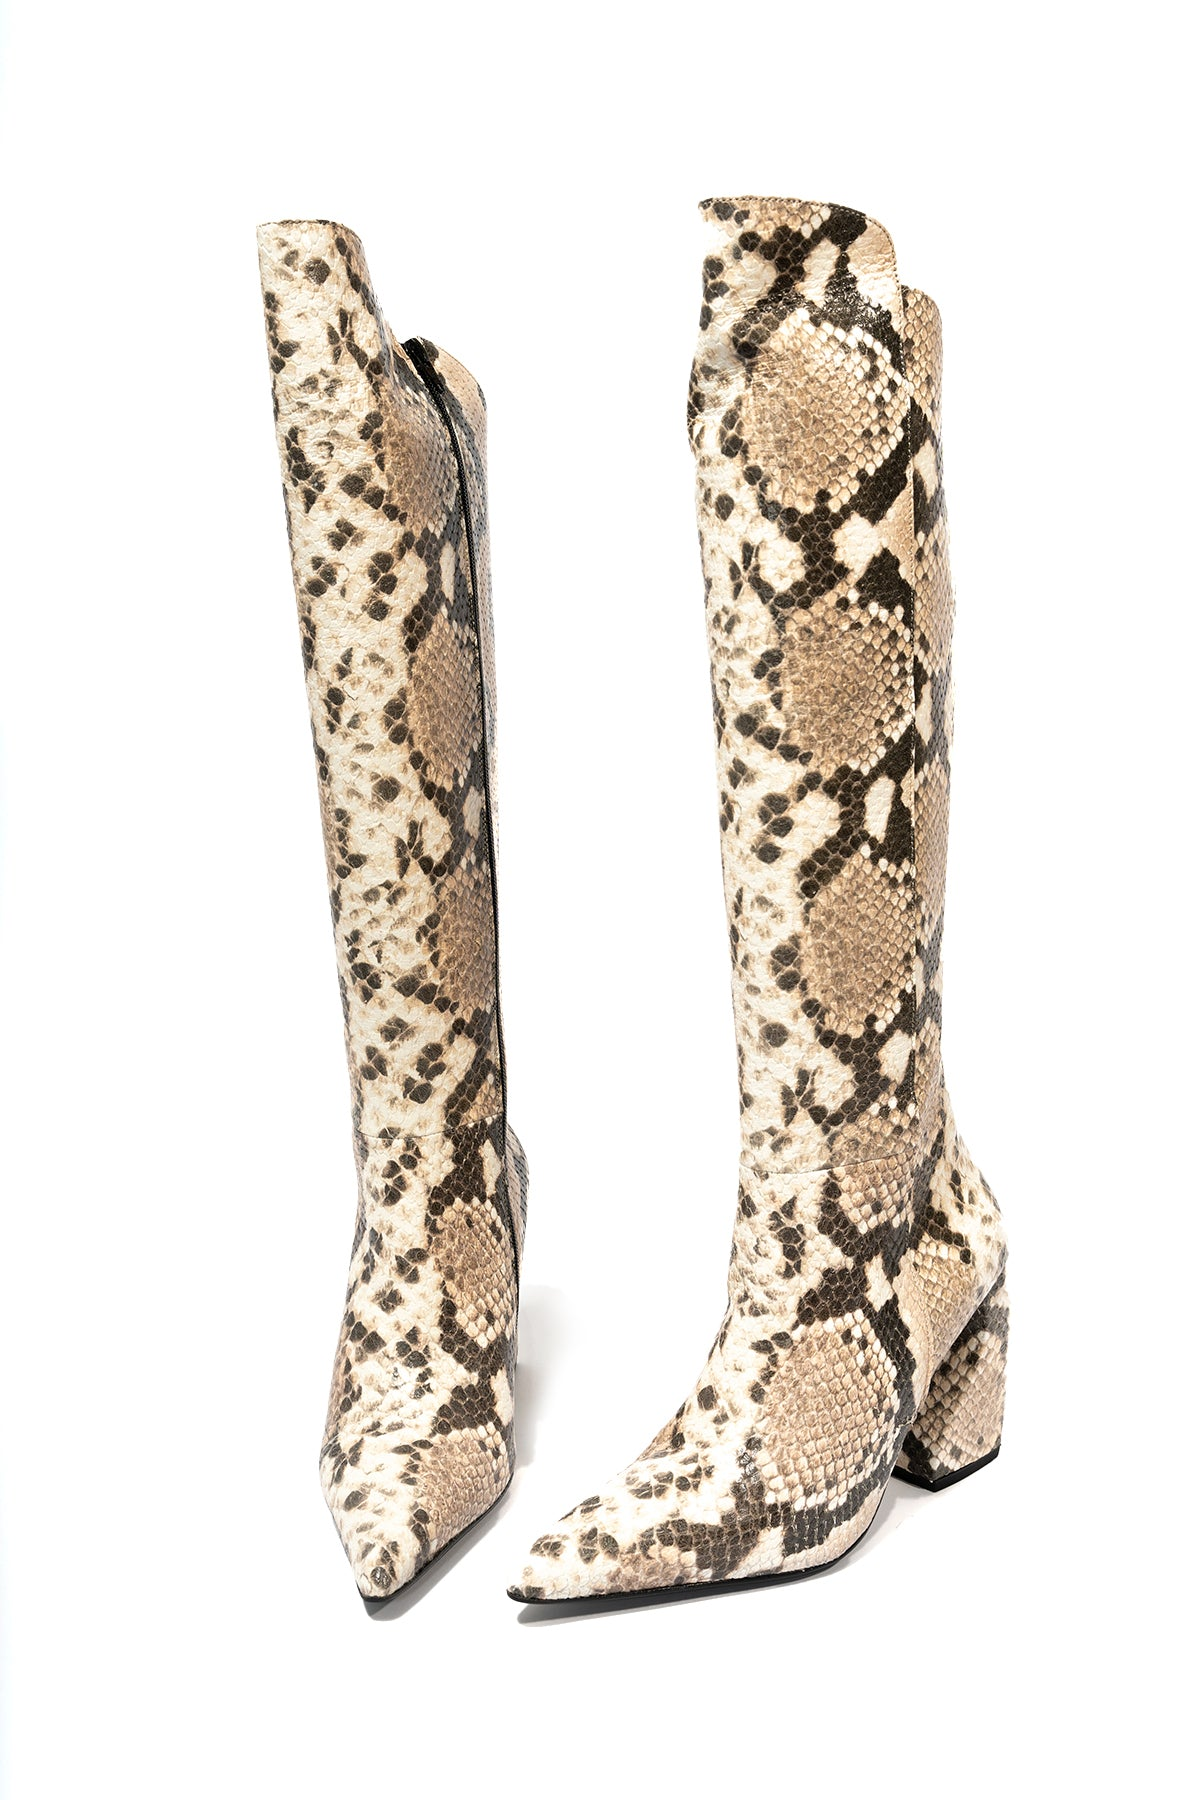 marques almeida HIGH KNEE SNAKE BOOTS